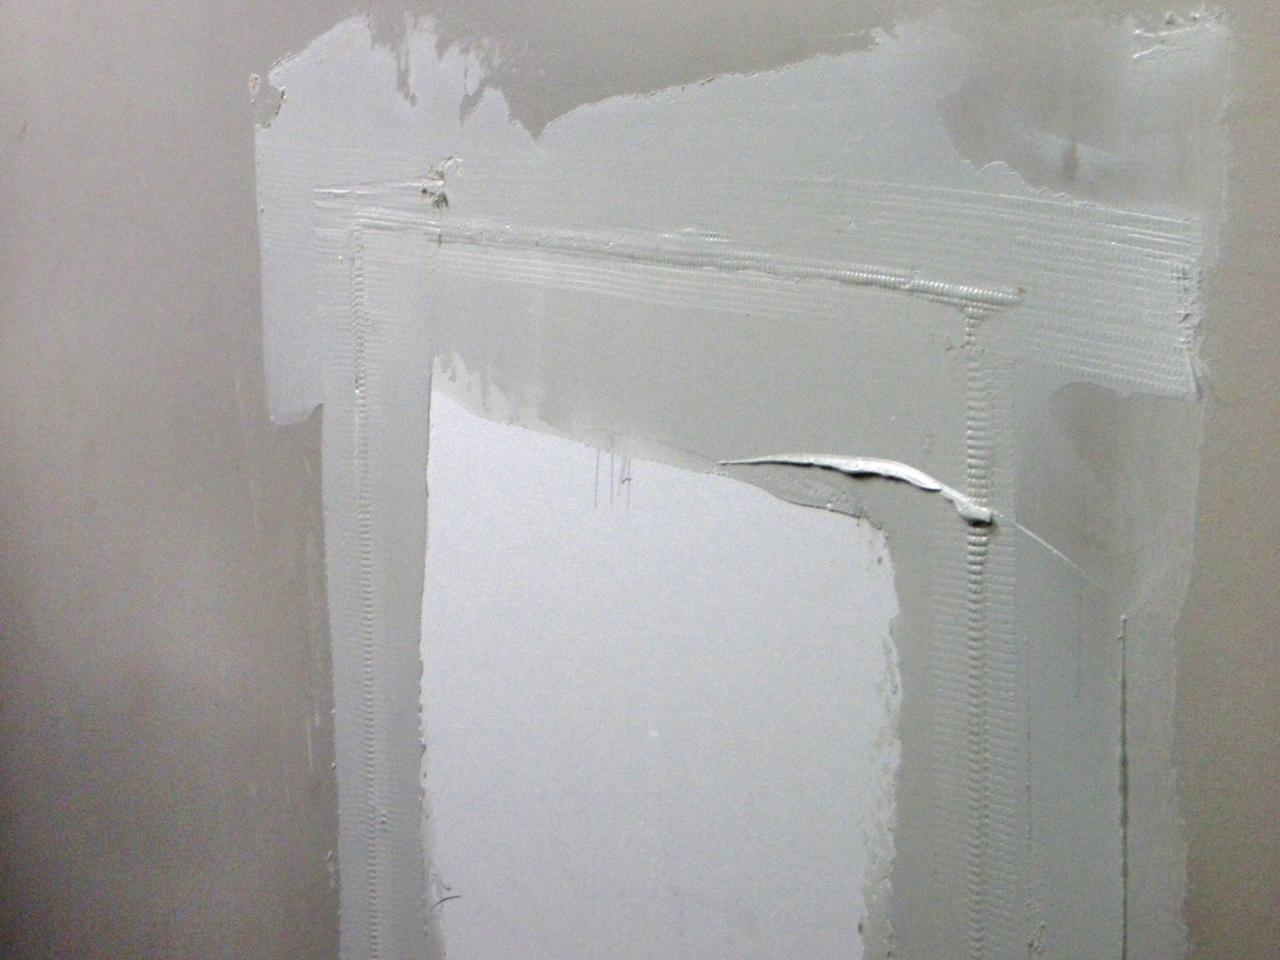 Drywall Gypsum Walls : How to repair cracks and holes in drywall tos diy